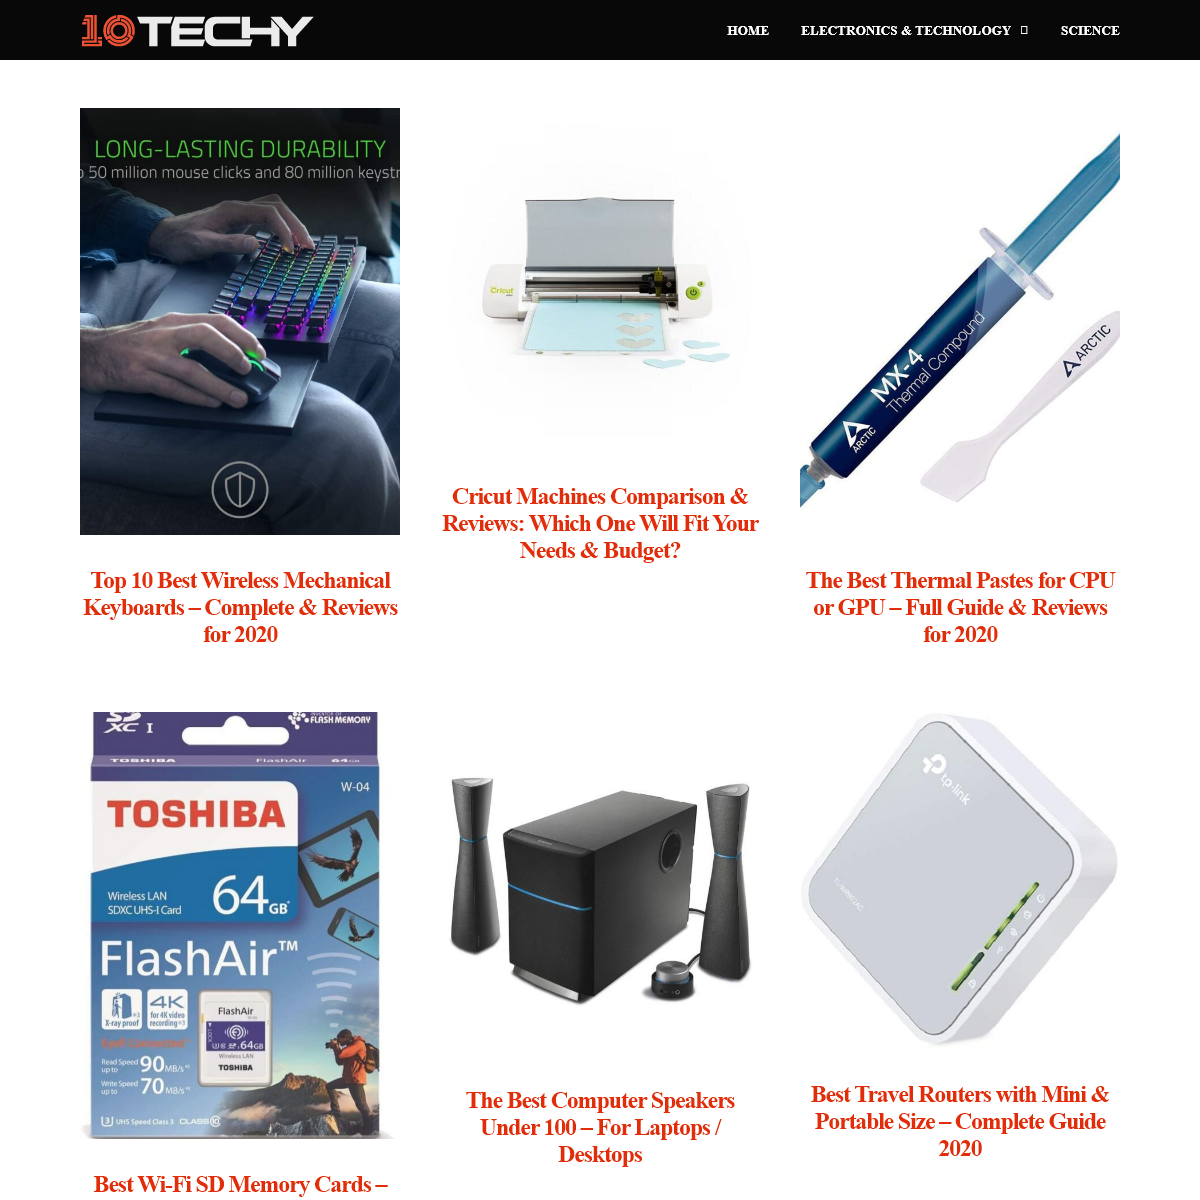 10Techy - Top Ten Techs, Products and Reviews